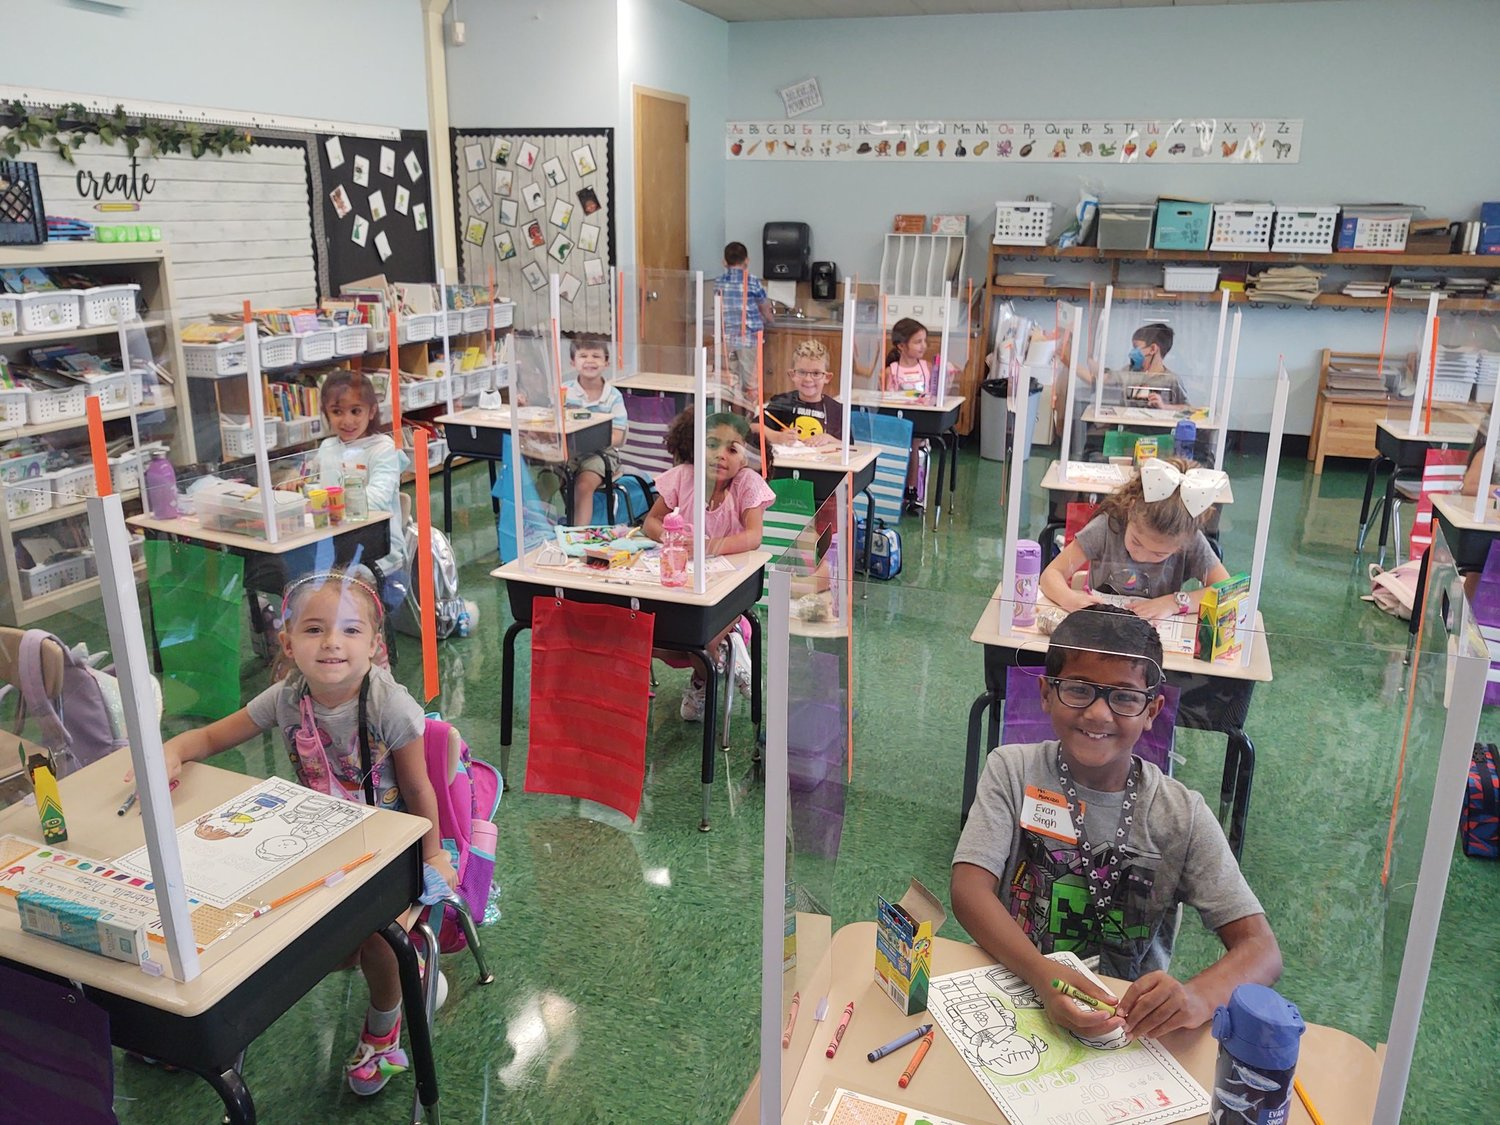 First grade students from Parkway Elementary School in the East Meadow School District sat at desks affixed with desk guards on their first day of classes on Sept. 8.